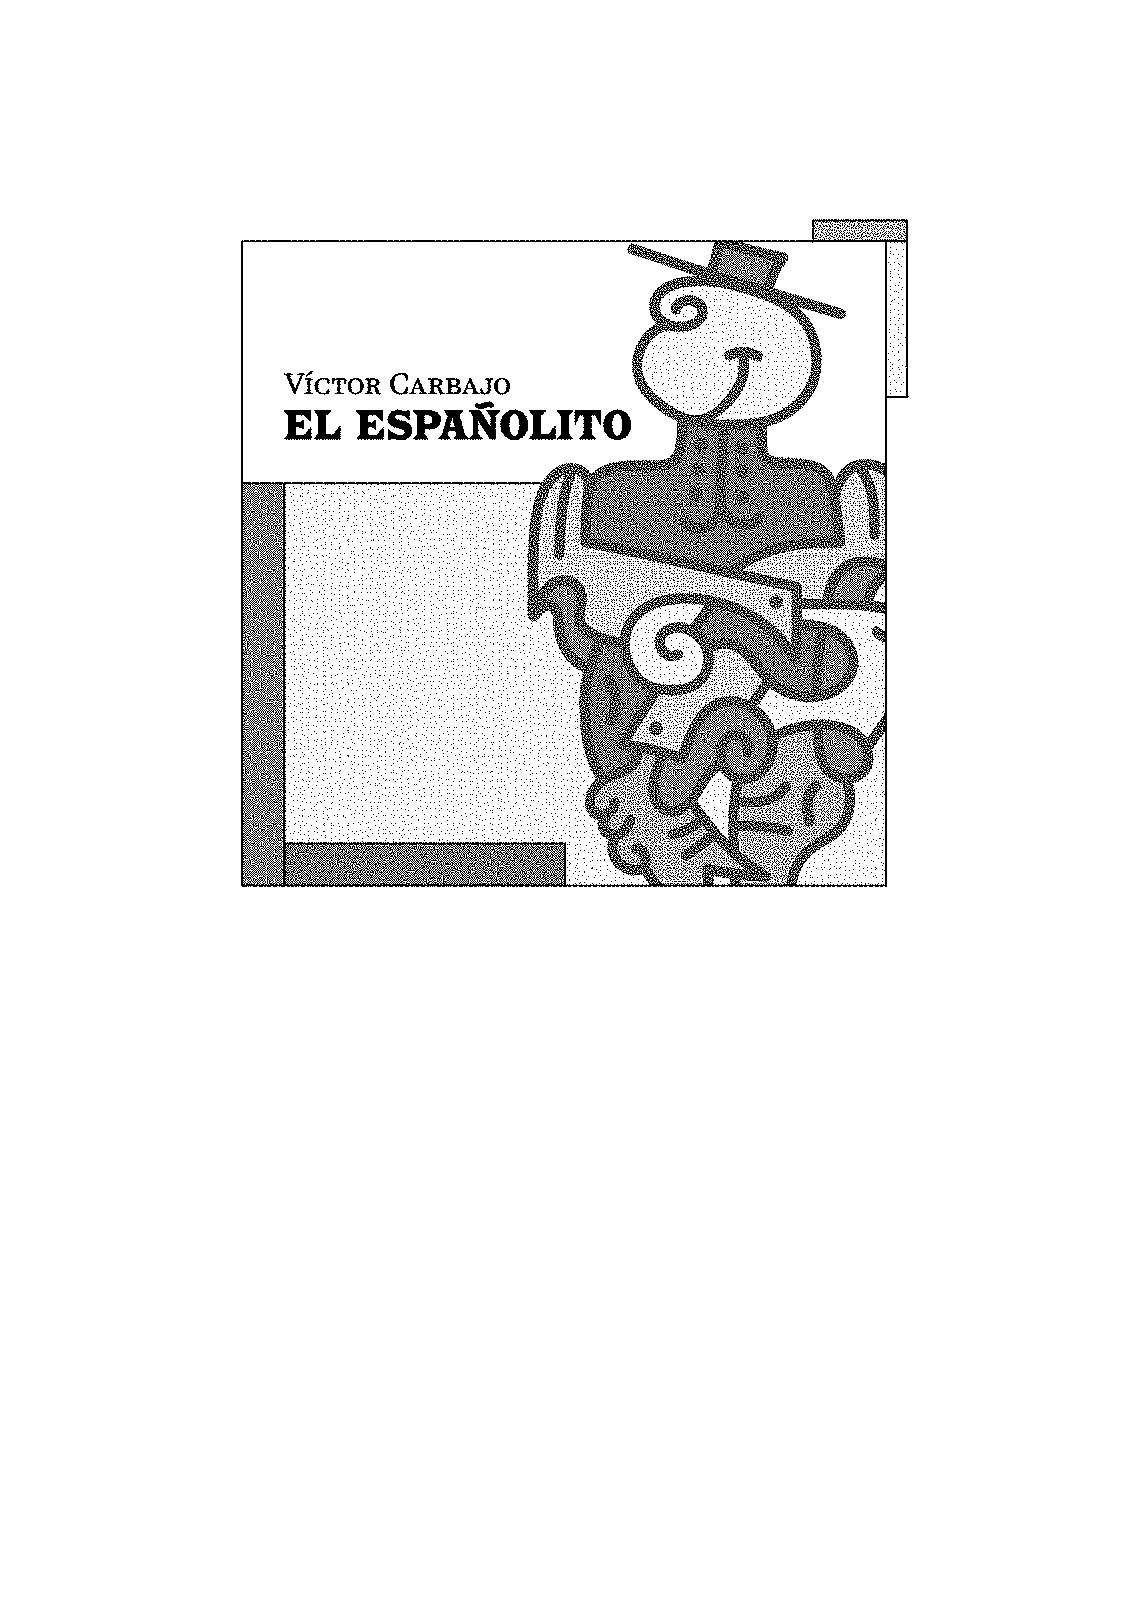 PMLP283301-carbajo-the little spaniard-1996-pf.pdf